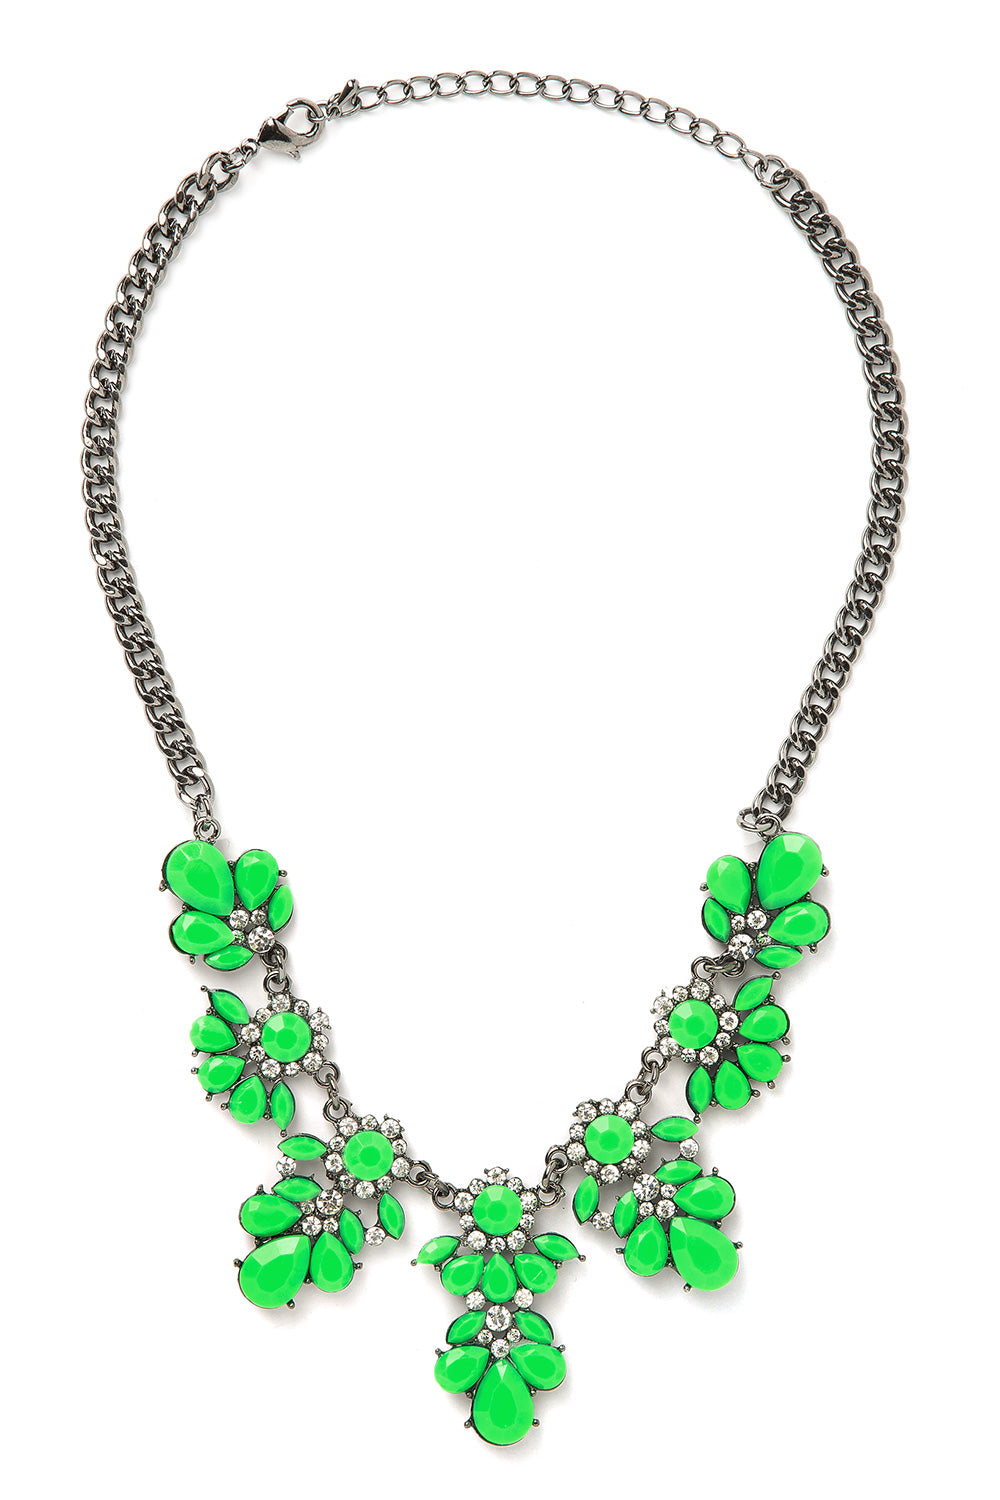 Type 4 Neon Blooming Necklace